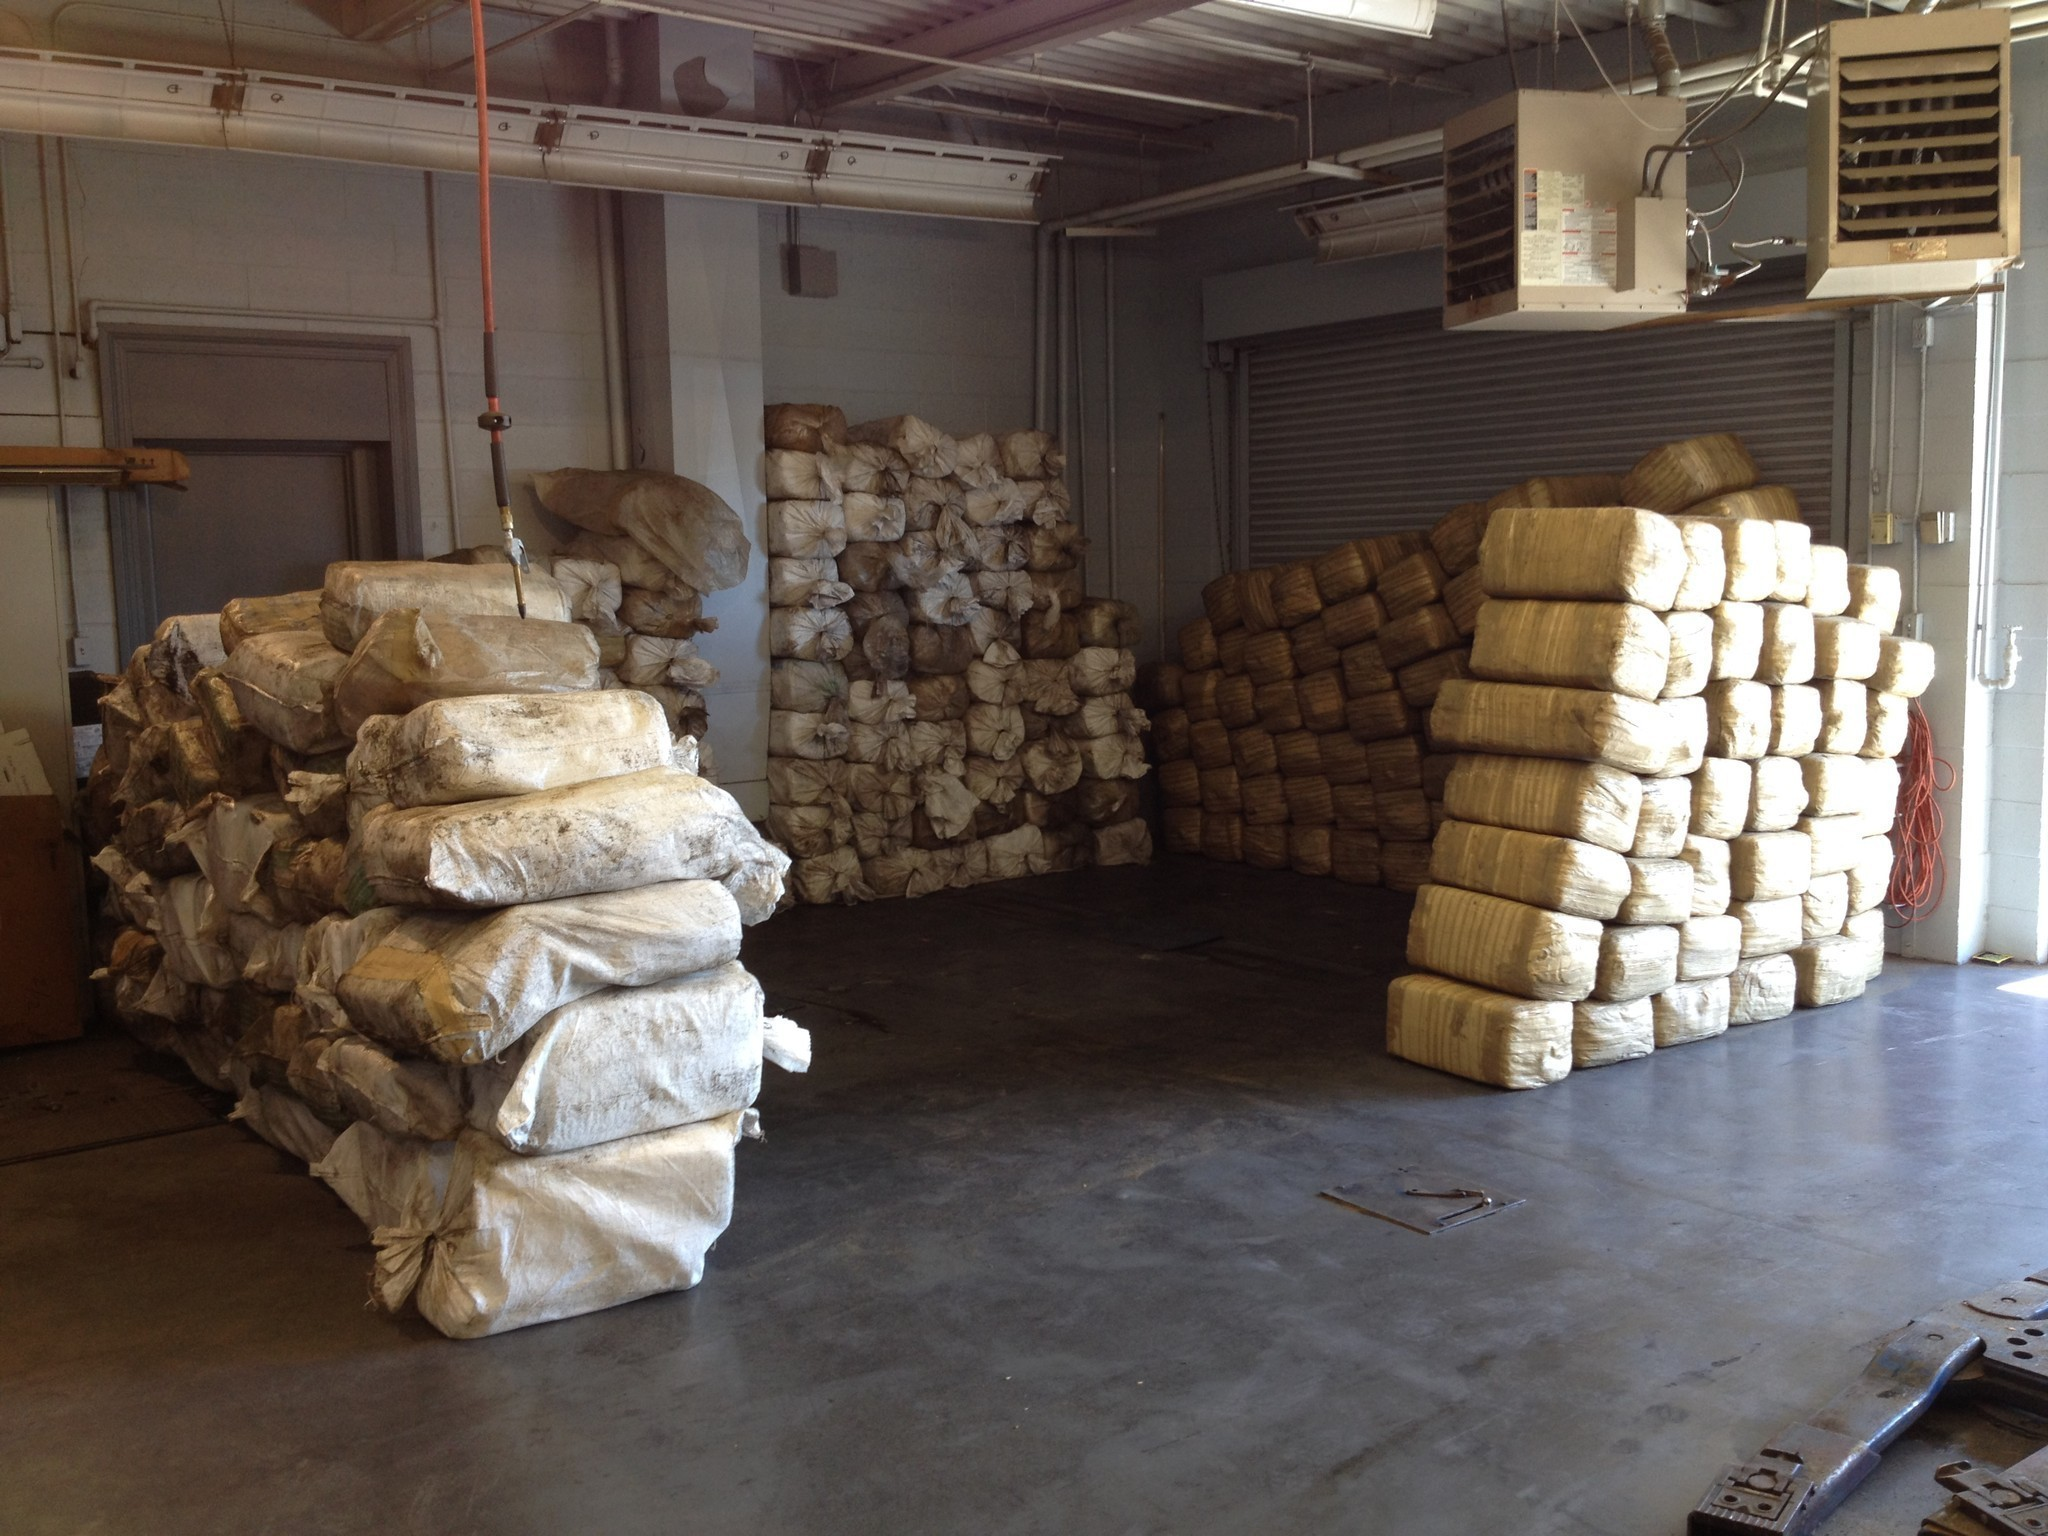 Bakersfield police find $76 million in marijuana in U-Haul truck